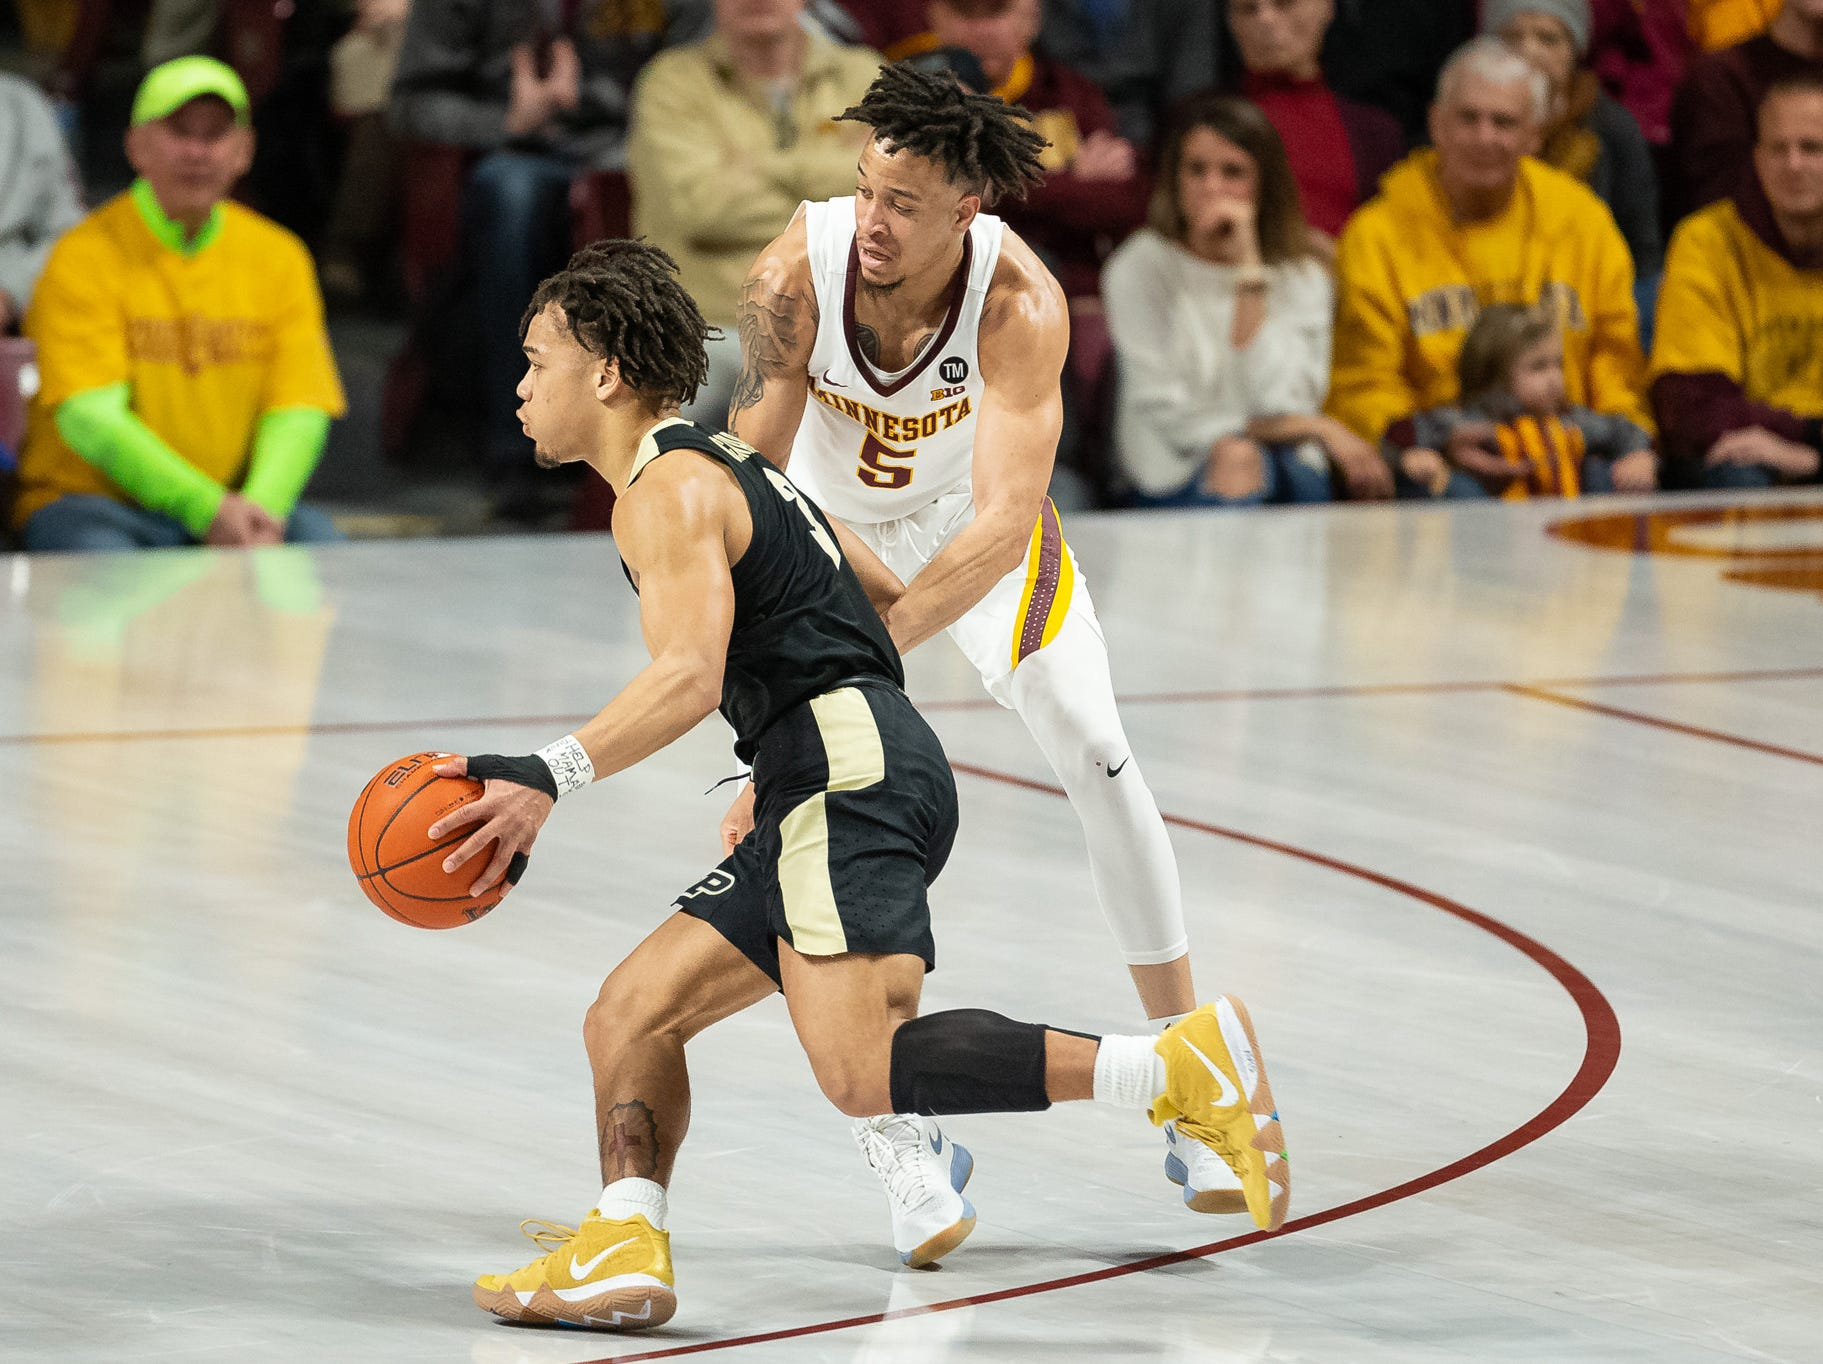 Mar 5, 2019; Minneapolis, MN, USA; Purdue Boilermakers guard Carsen Edwards (3) drives to the basket as Minnesota Gophers guard Amir Coffey (5) defends during the first half at Williams Arena. Mandatory Credit: Harrison Barden-USA TODAY Sports